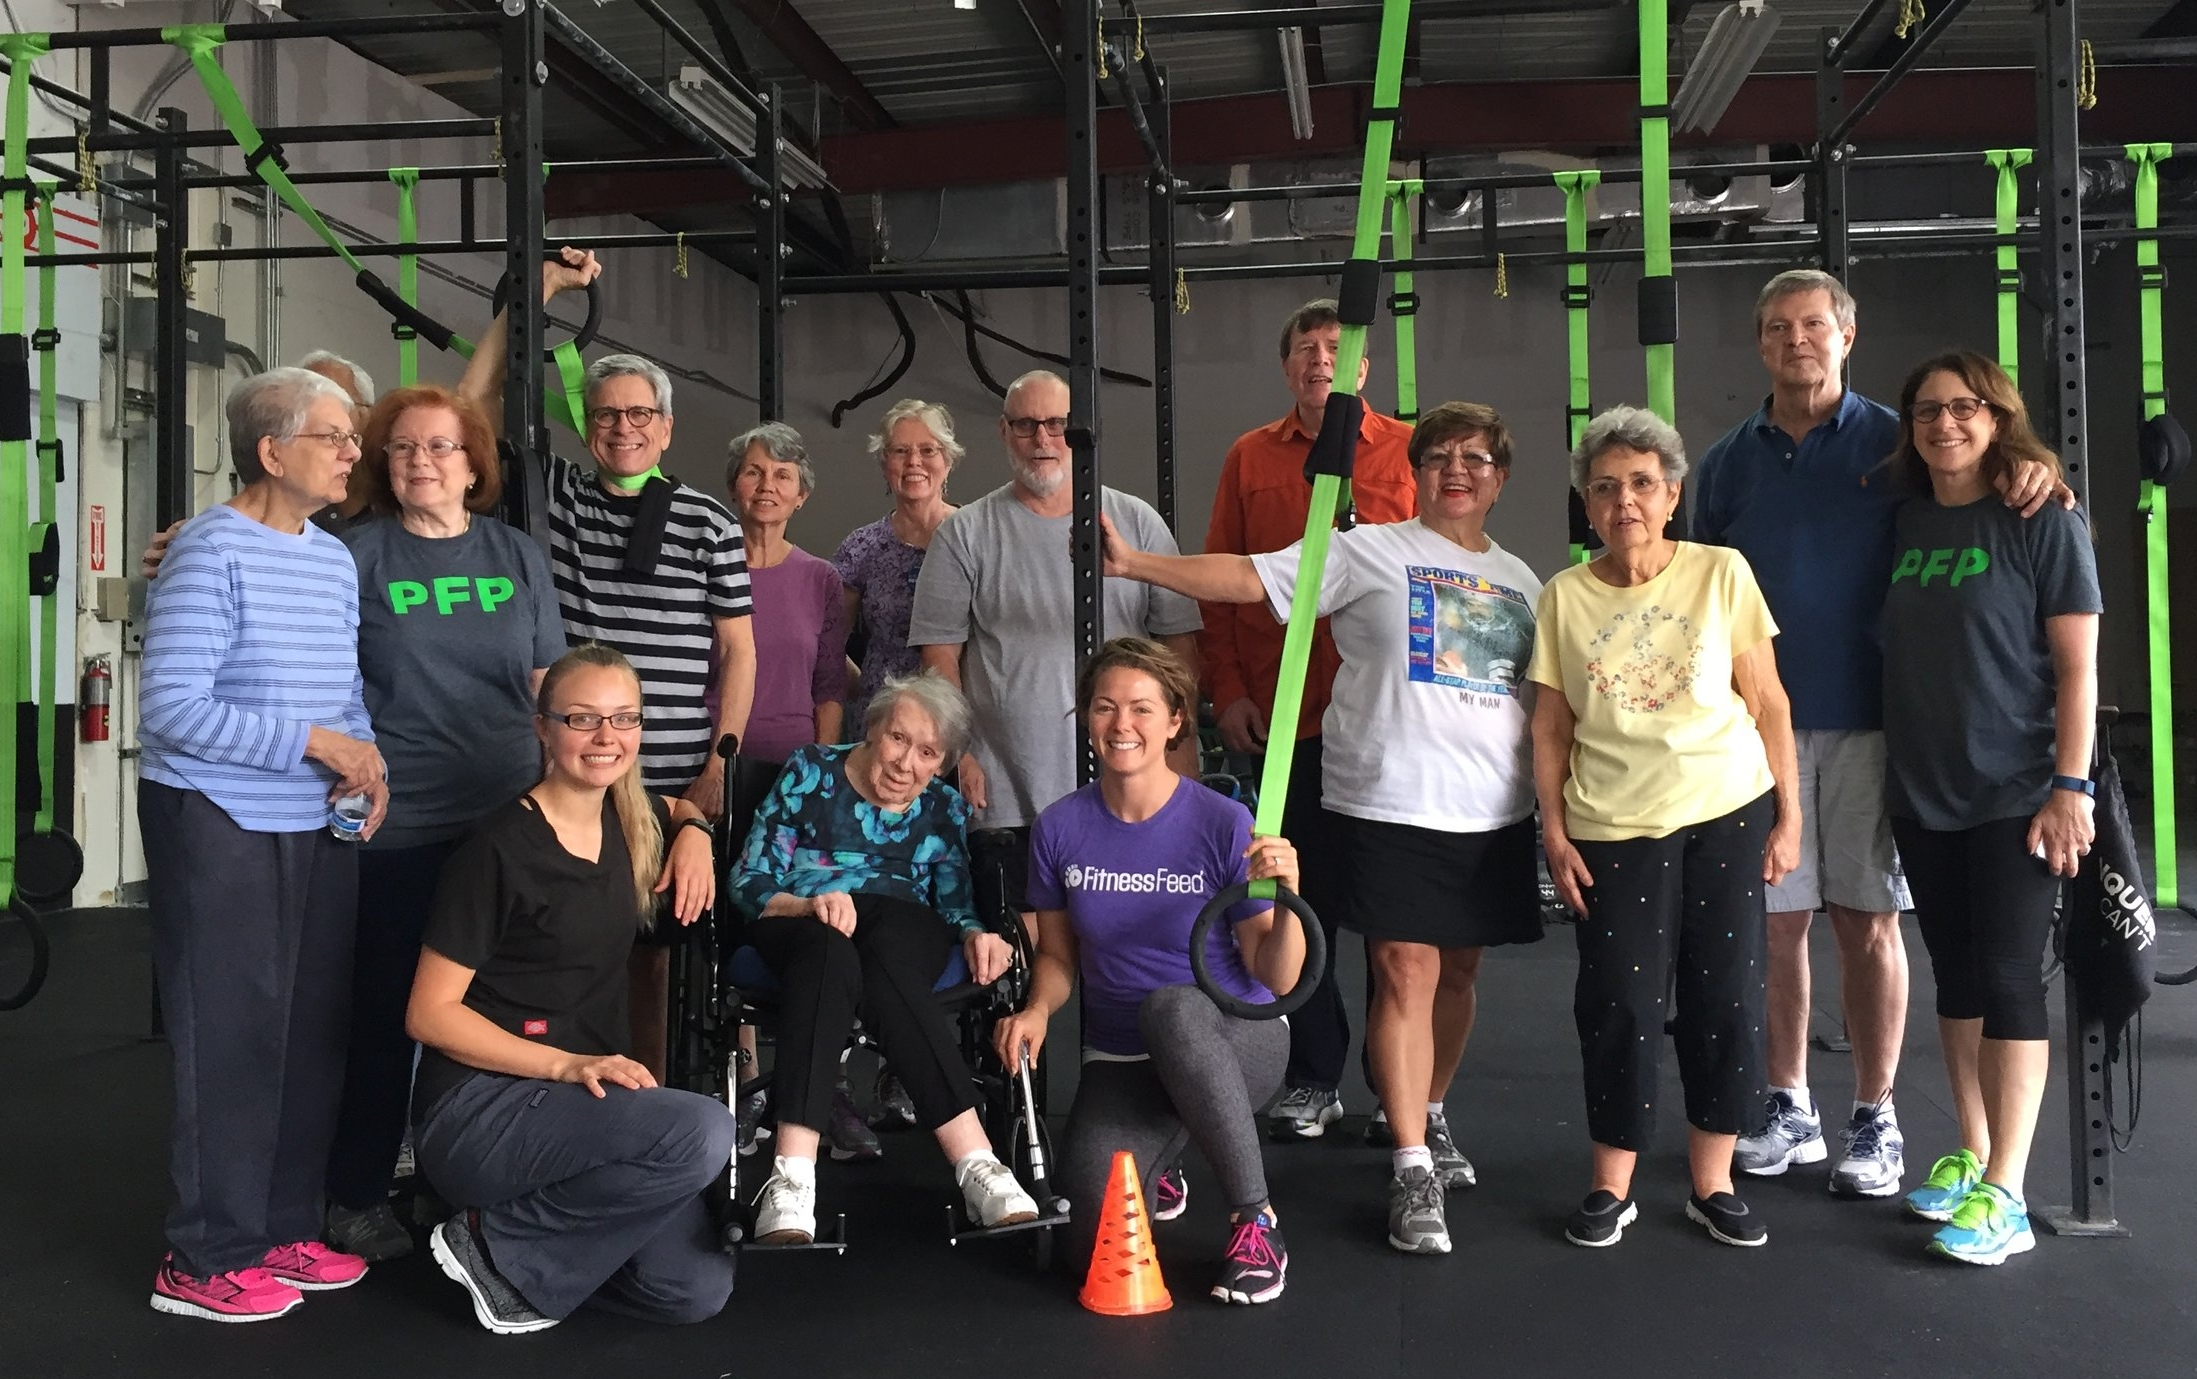 Celebrating the Power for Parkinson's fitness class participants hard work!